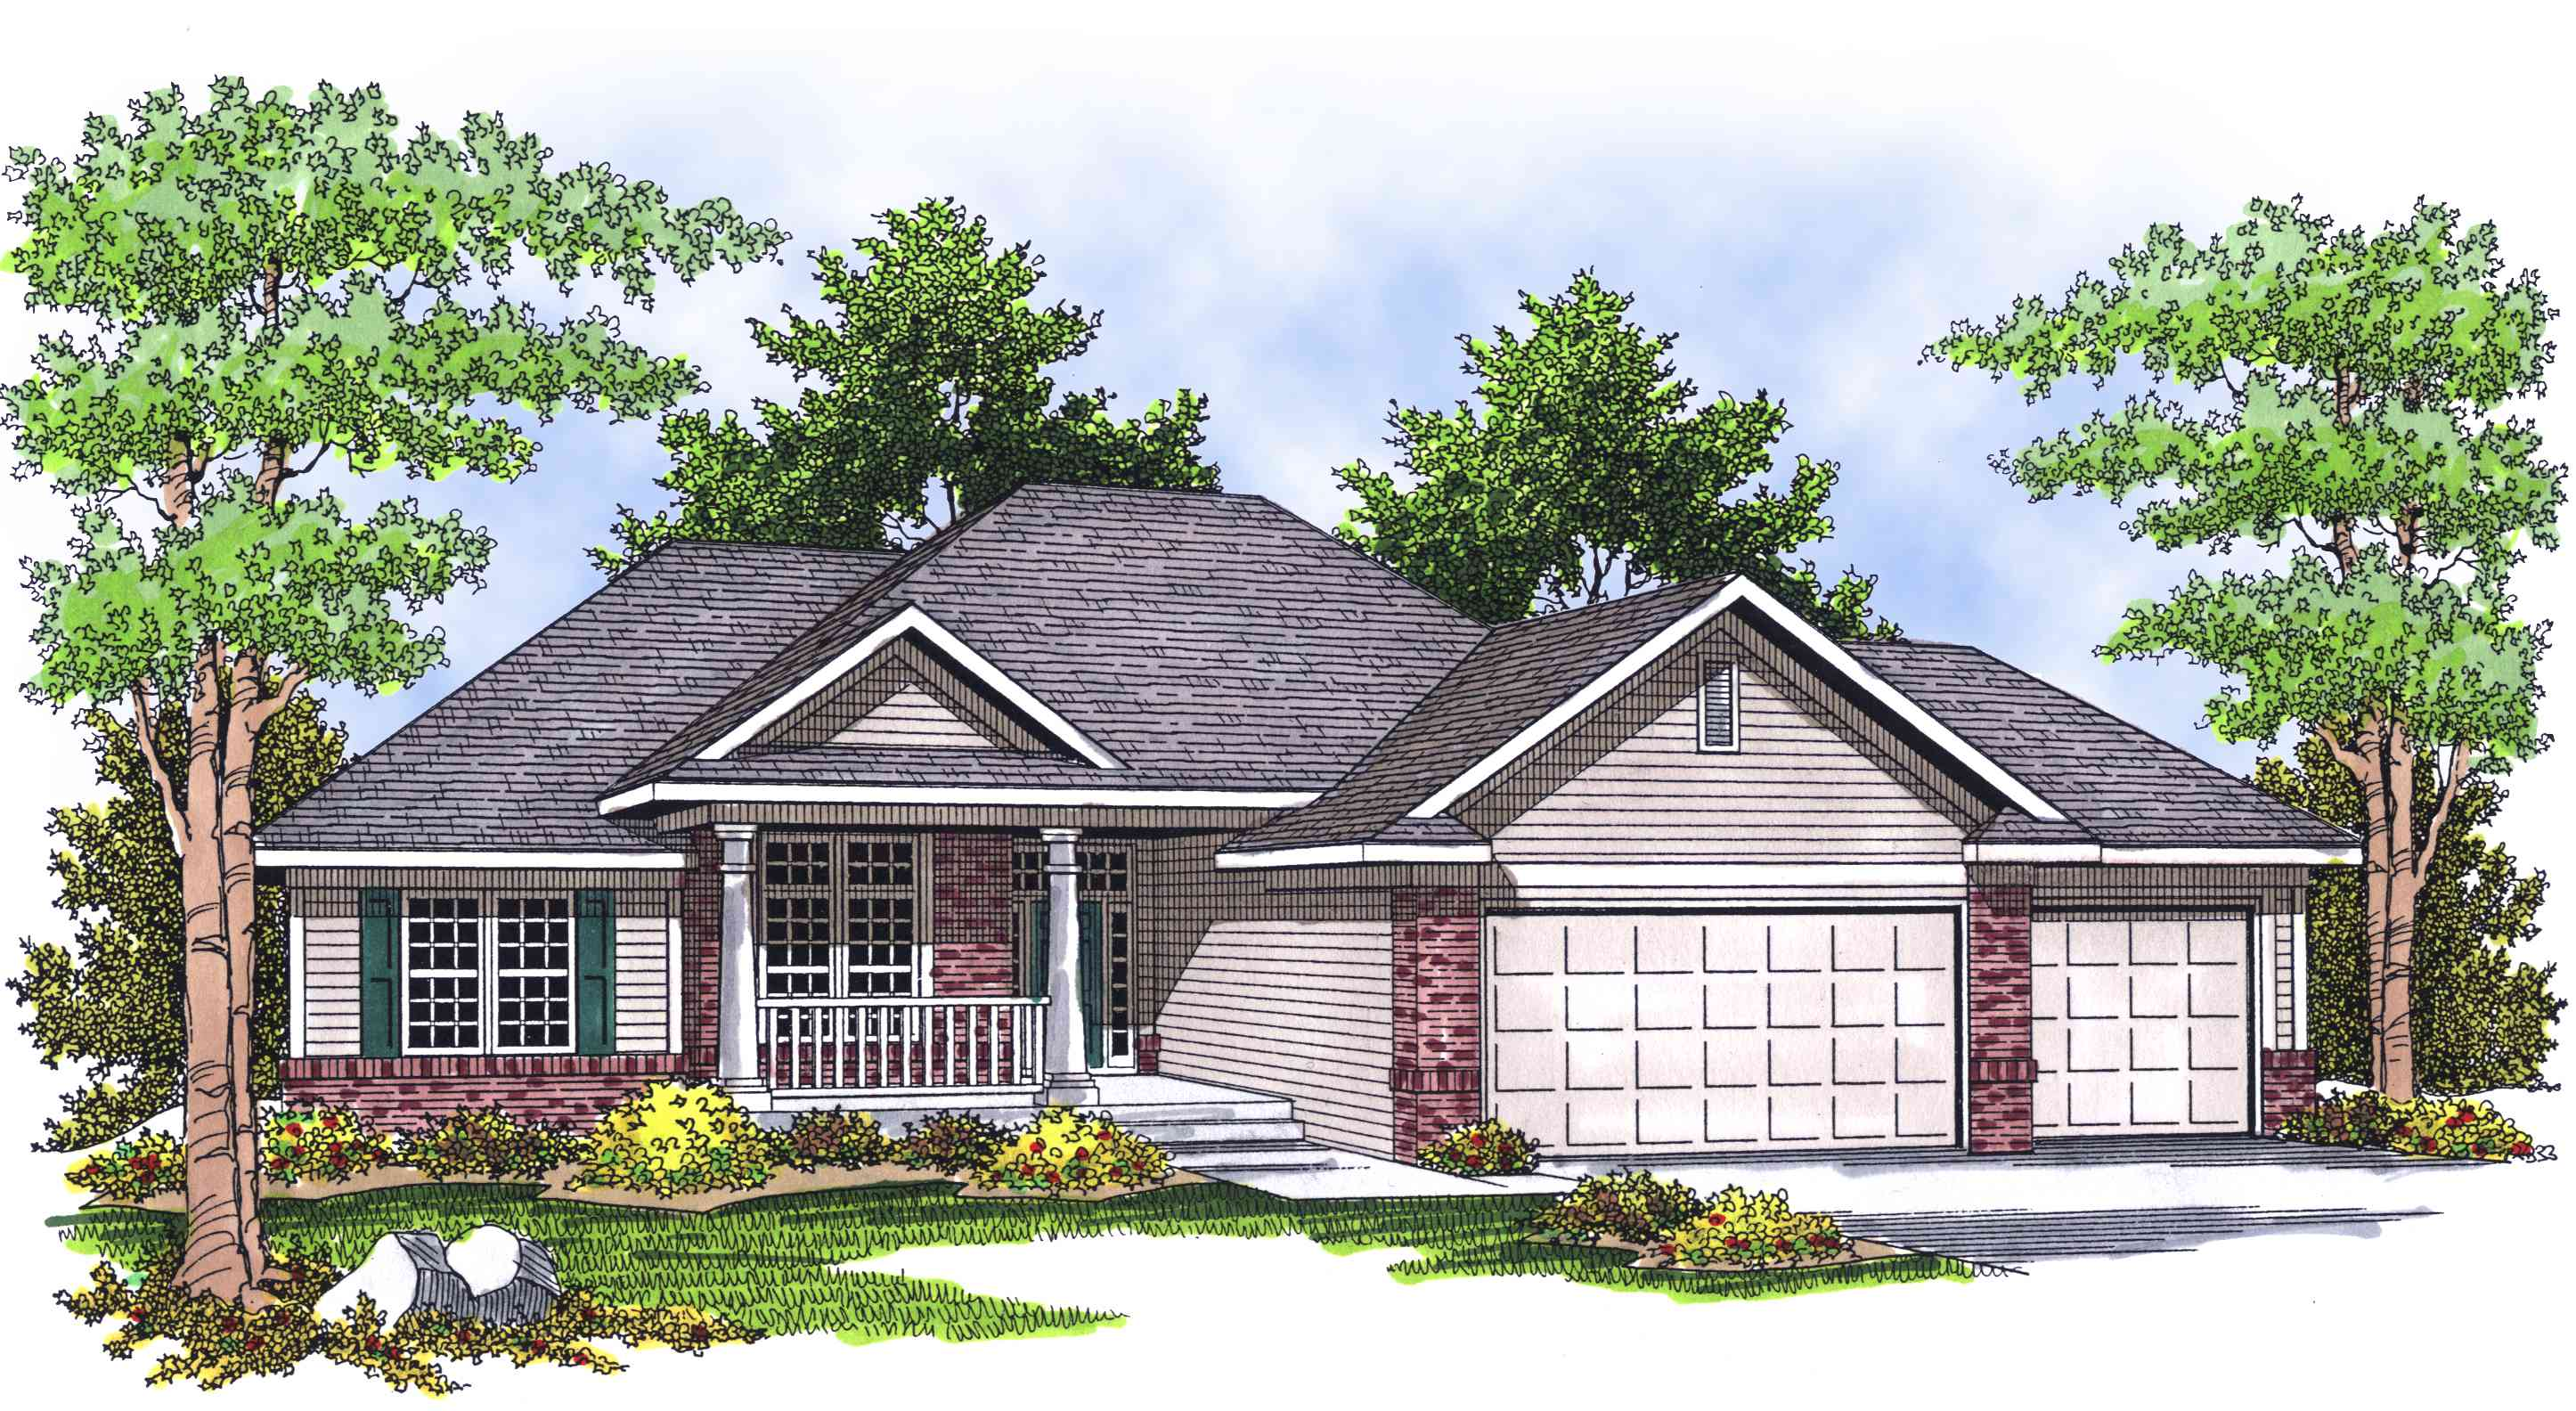 Traditional ranch home plan 89013ah architectural for Traditional ranch home plans